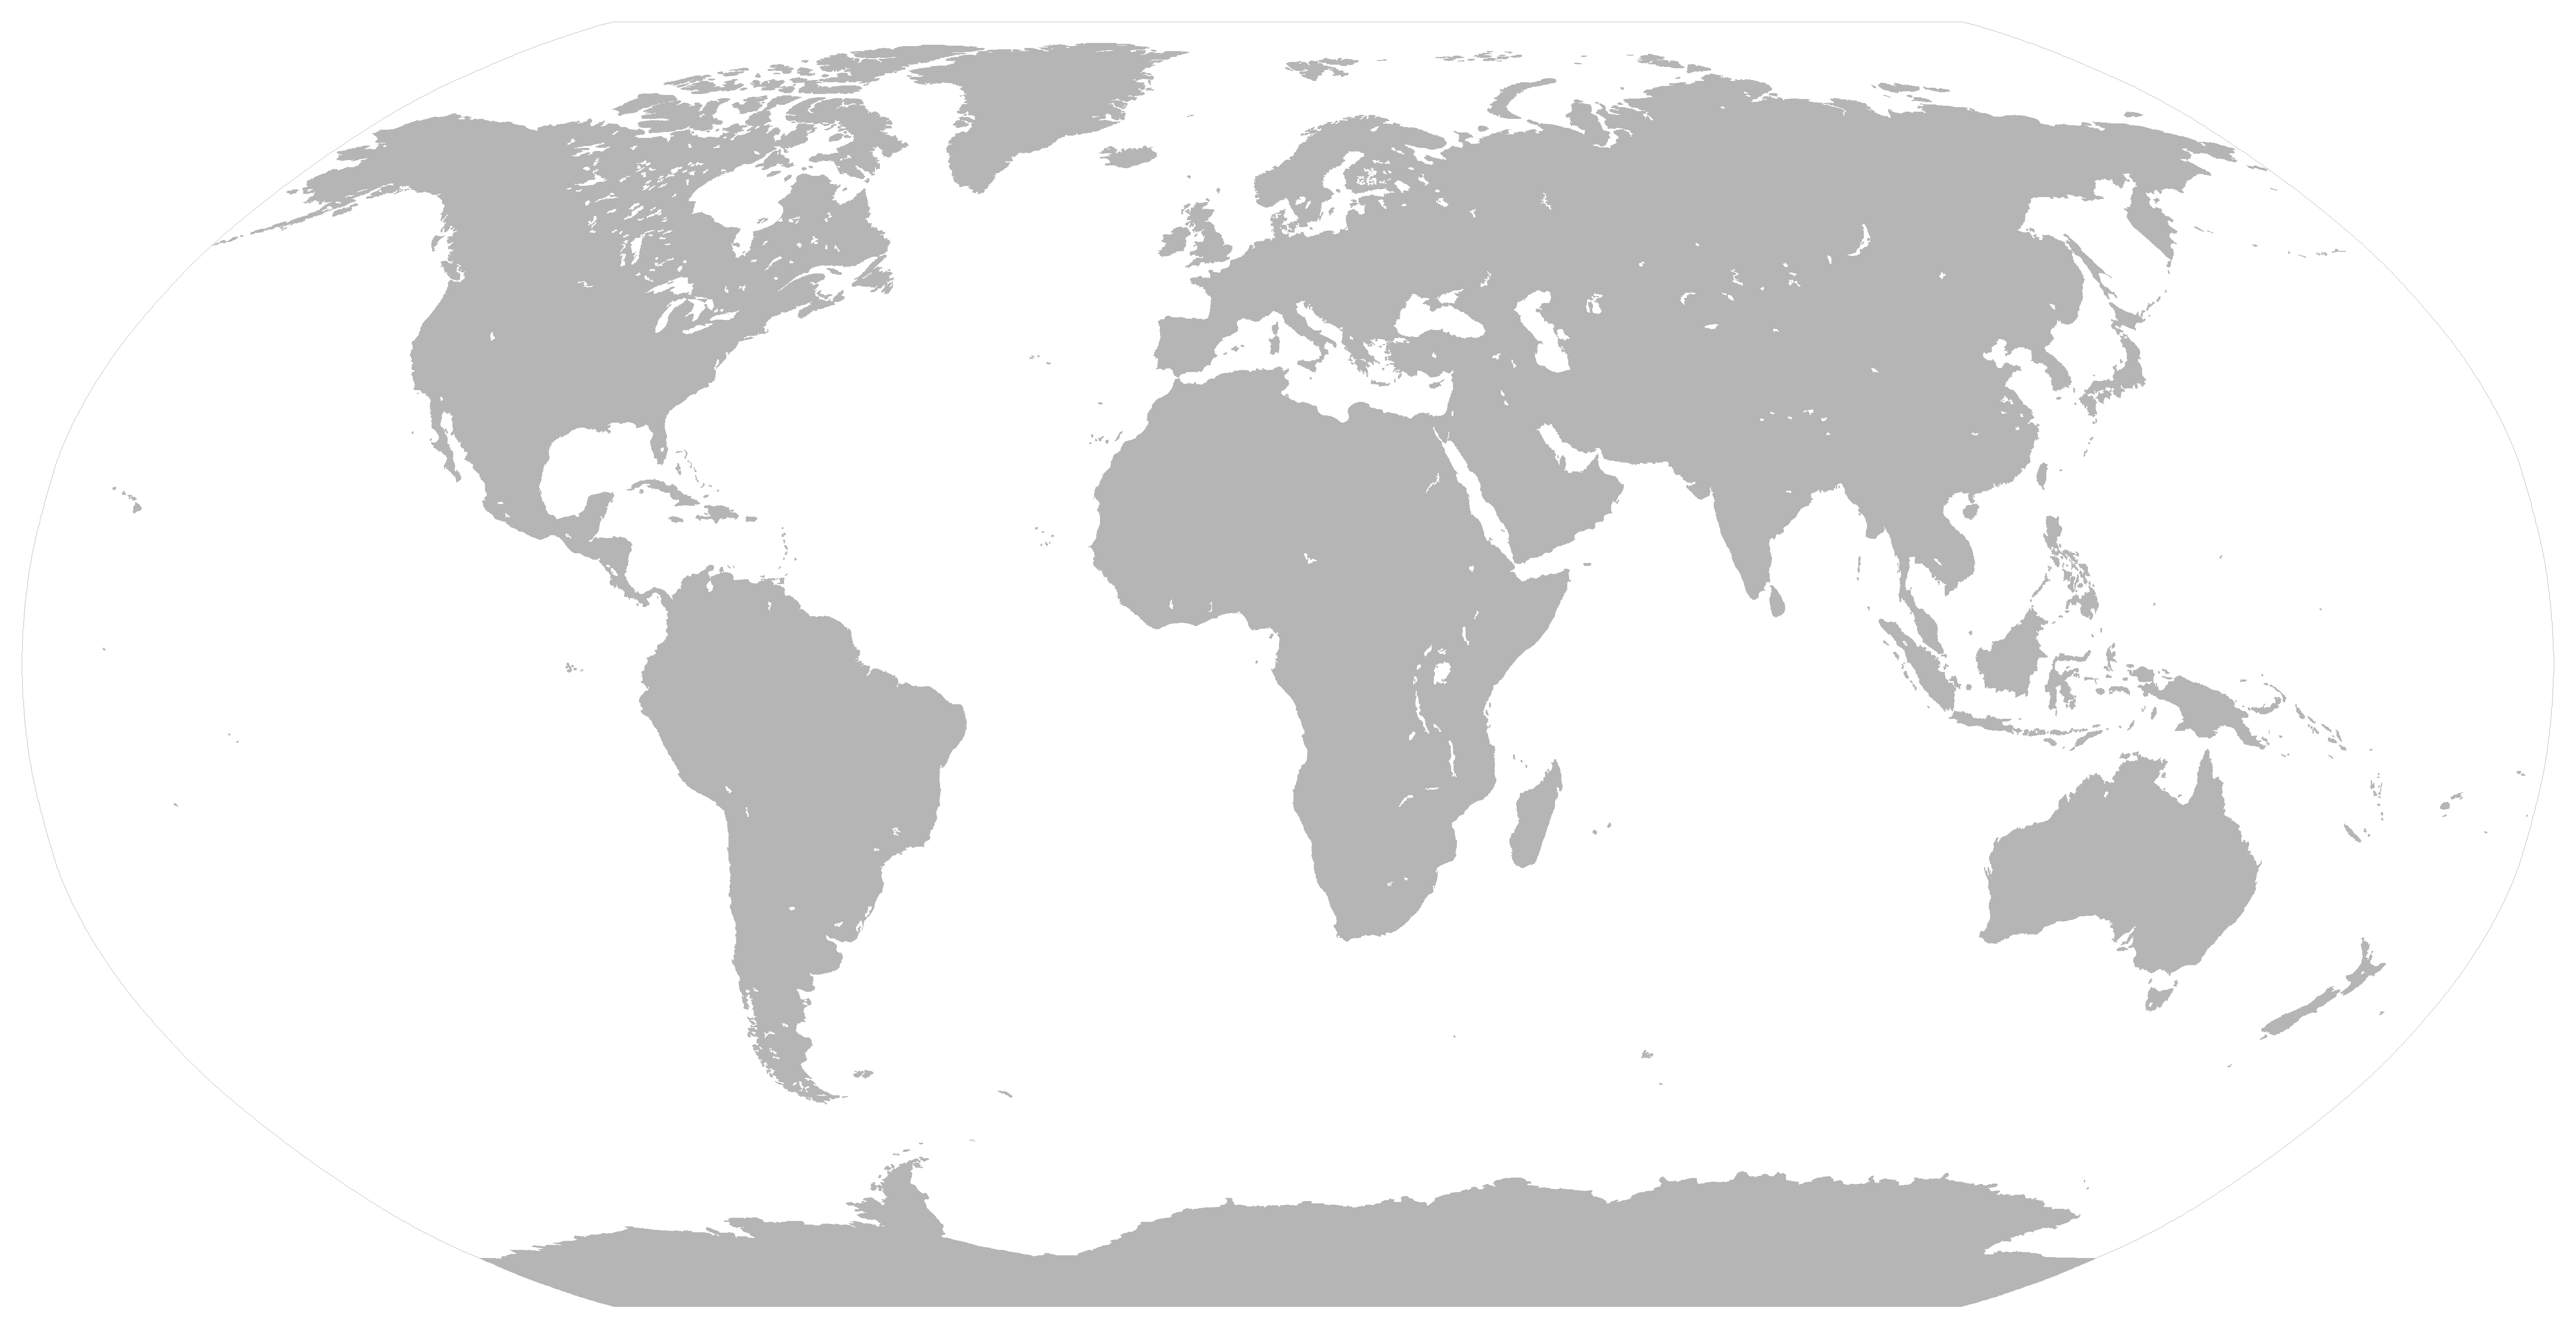 Datei:World map blank gmt.png.